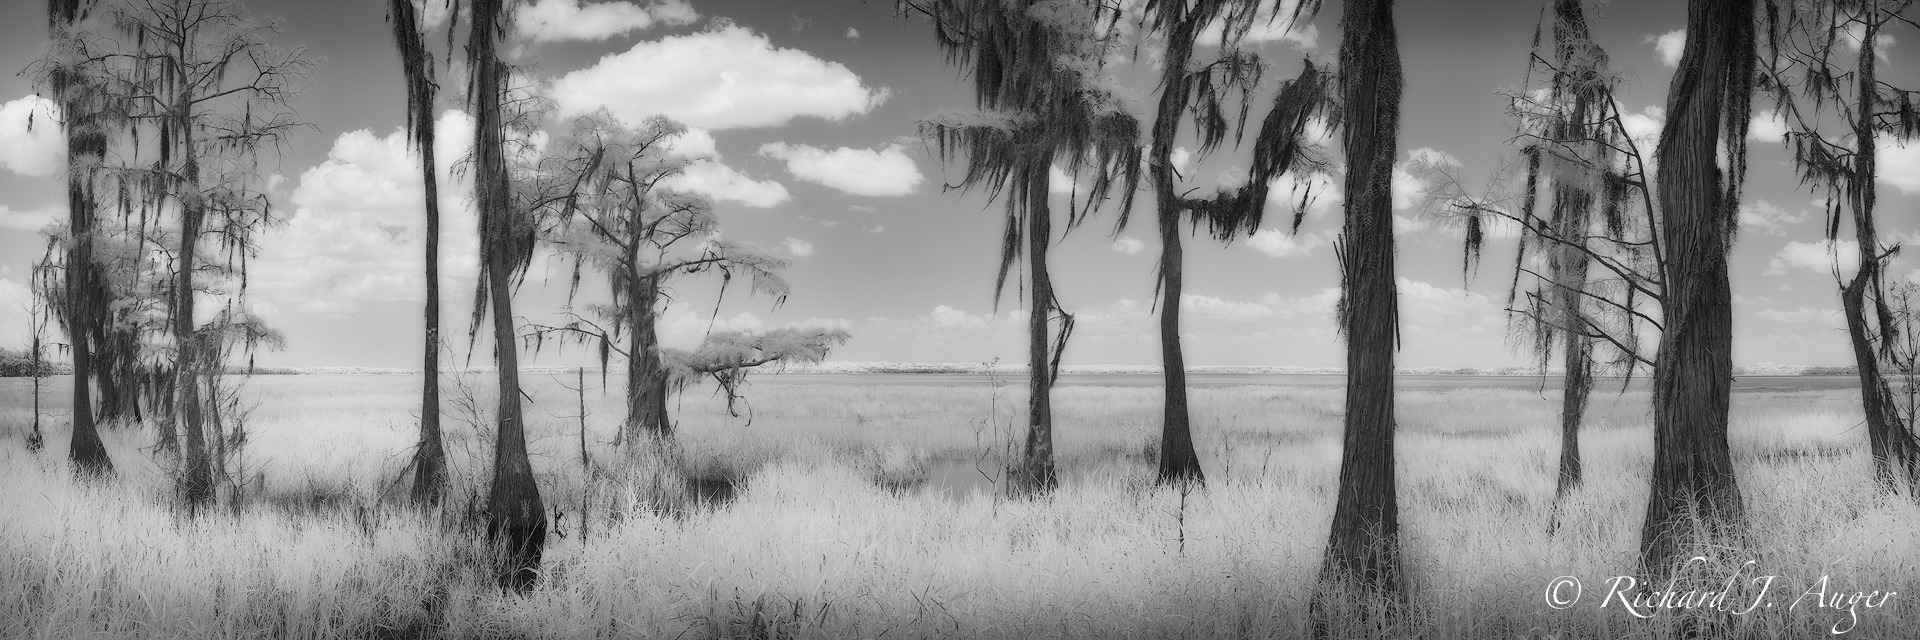 Lake Louisa State Park, Florida, Cypress Trees, Nature, Landscape, Photograph, Photographer, Monochrome, Black and White, Infrared, Richard Auger